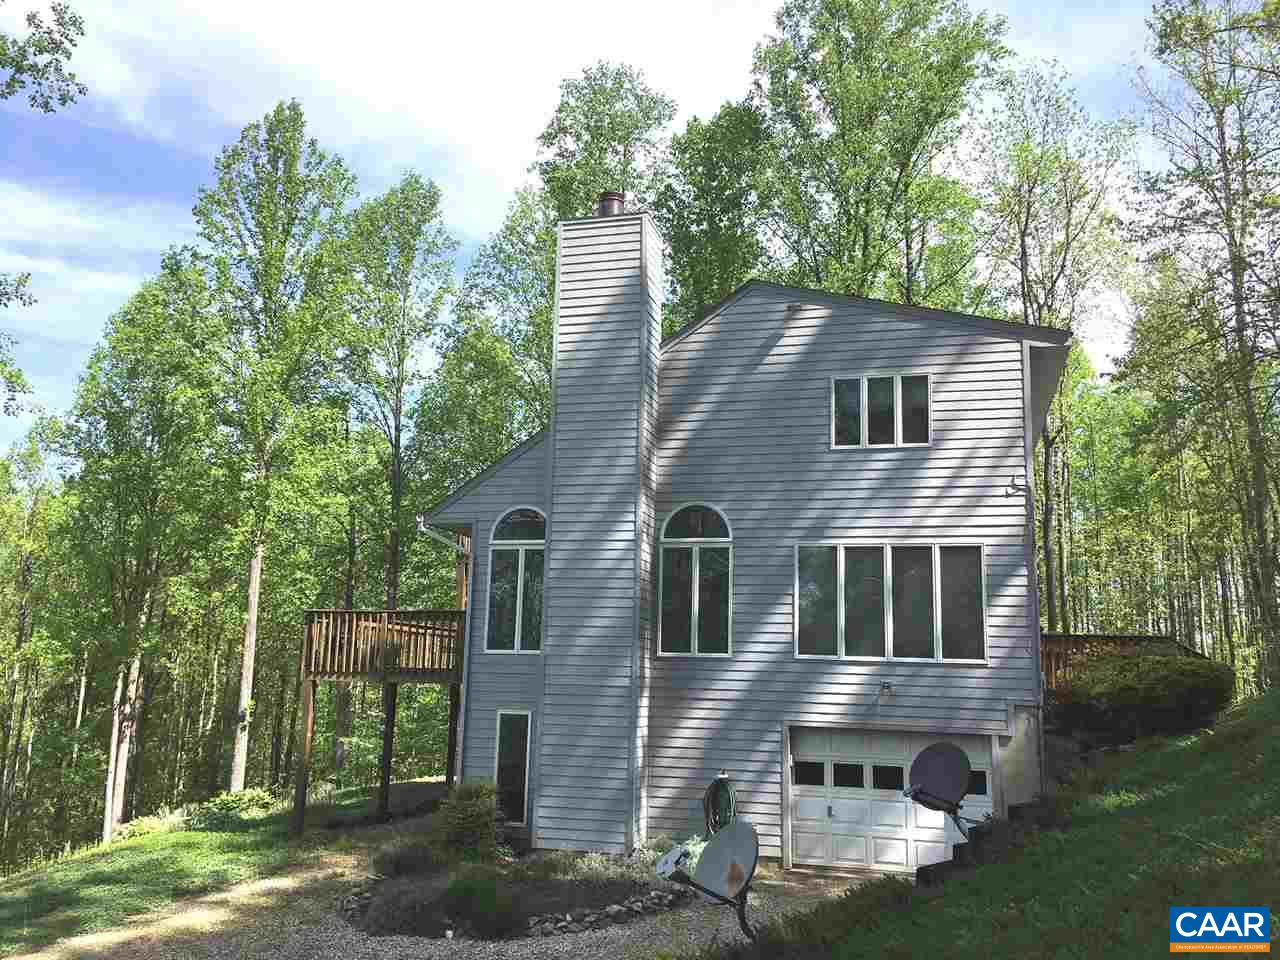 home for sale , MLS #577352, 271 Hager Ln